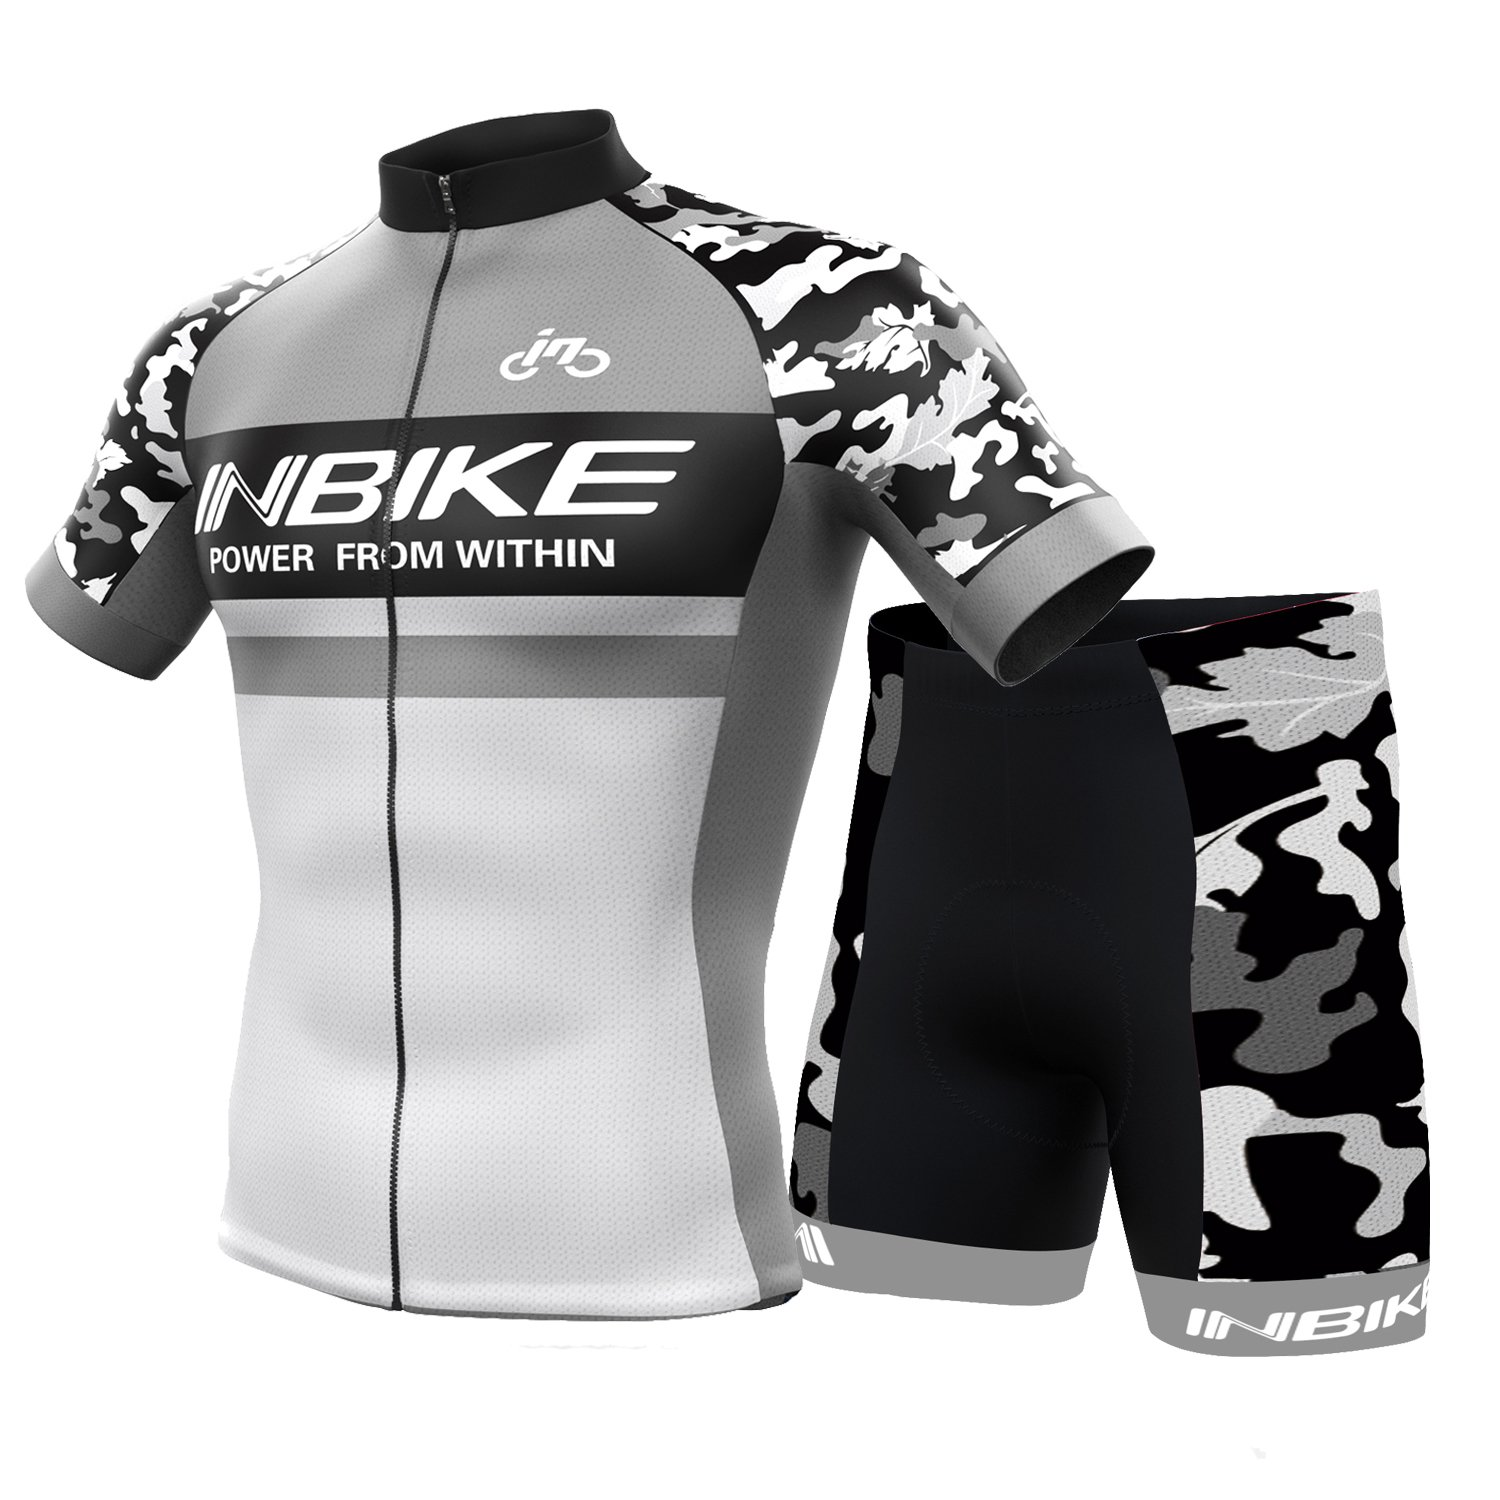 INBIKEメンズandレディース夏通気性Cycling Jersey and 3dシリコンパッド入りショーツOutfit B0732Z6SMN (US)S-(CN)L|グレー グレー (US)S-(CN)L